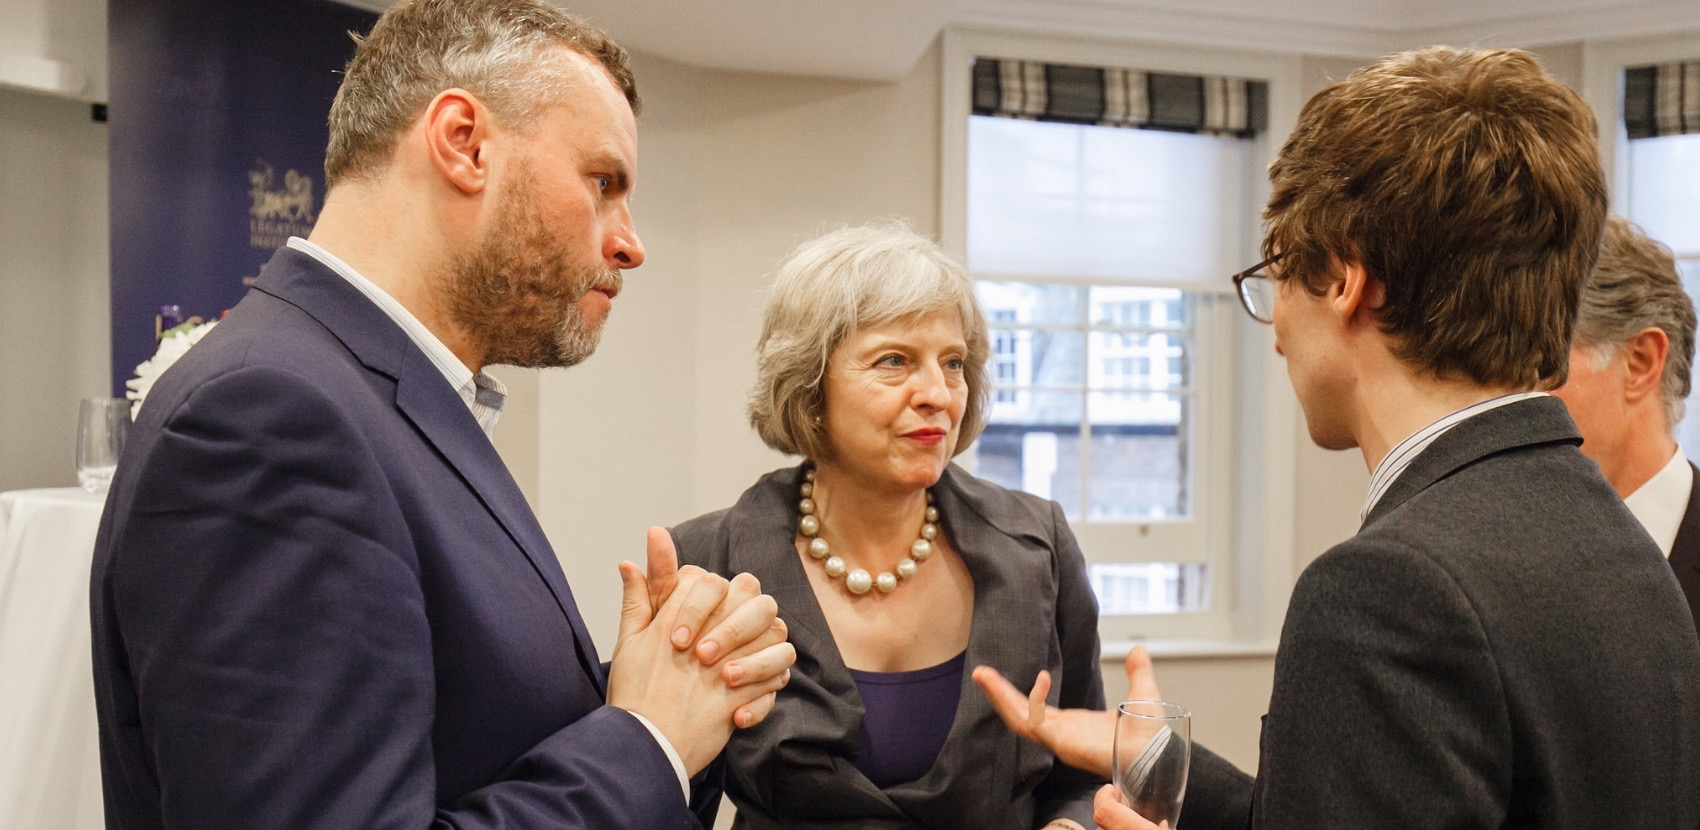 Fig. 29. Charlotte Skene Catling and I discussing the LSA with Theresa May at the summer party of the Legatum Institute, where I was a fellow.